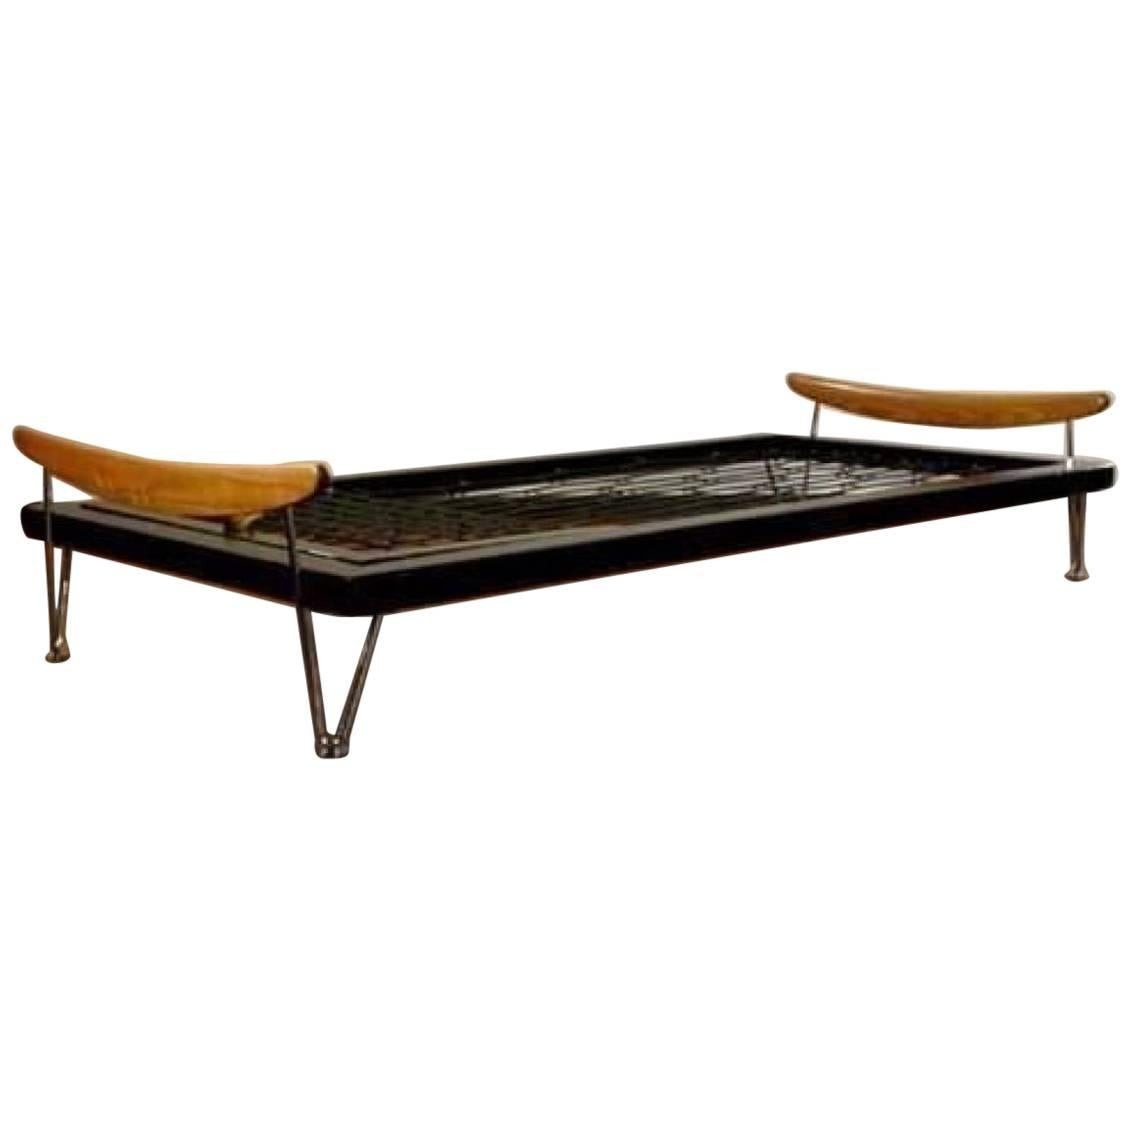 Fred Ruf Daybed, 1950s